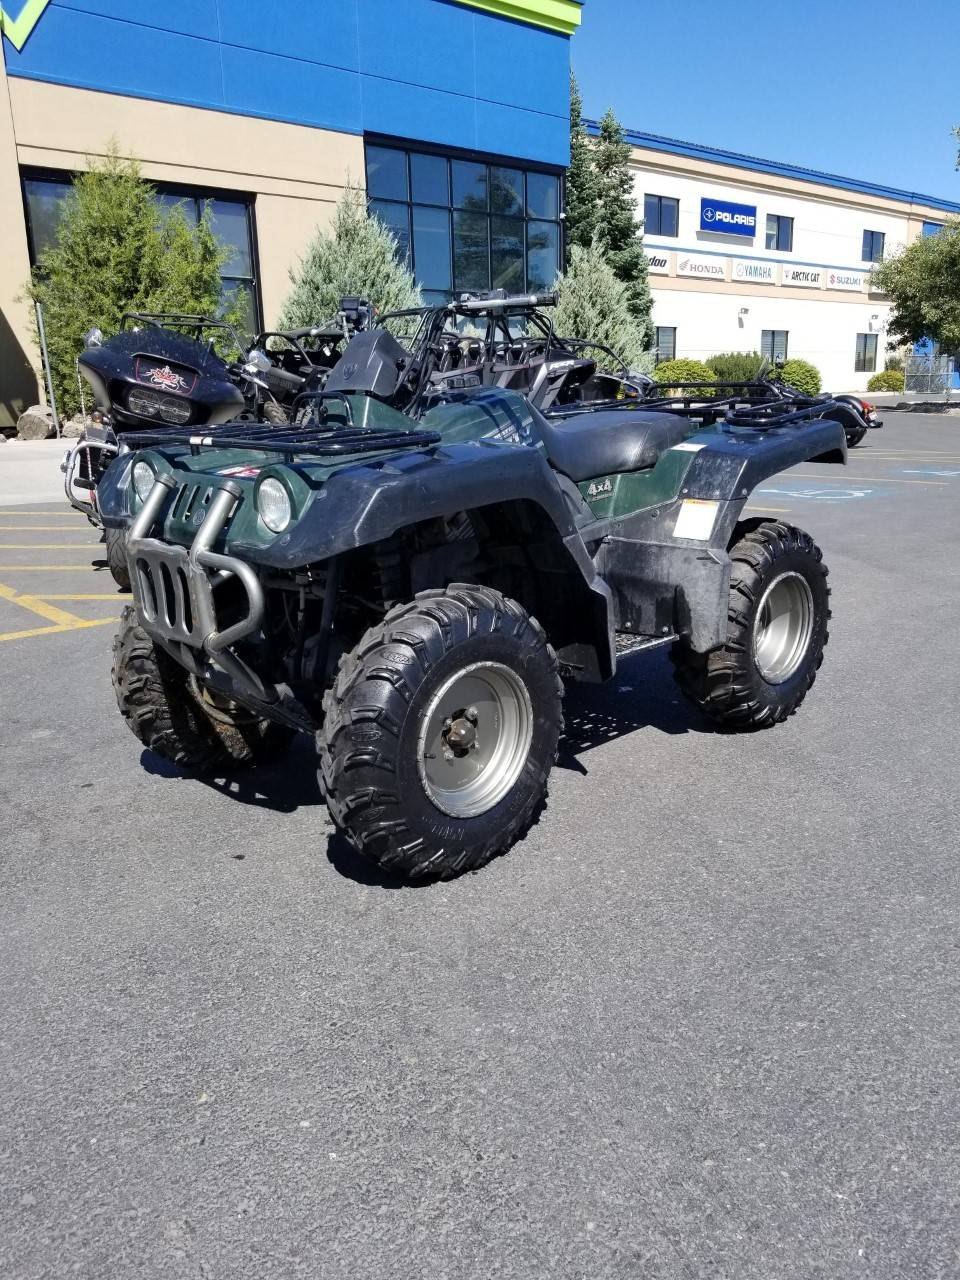 2001 Yamaha Grizzly 660 in Rexburg, Idaho - Photo 5